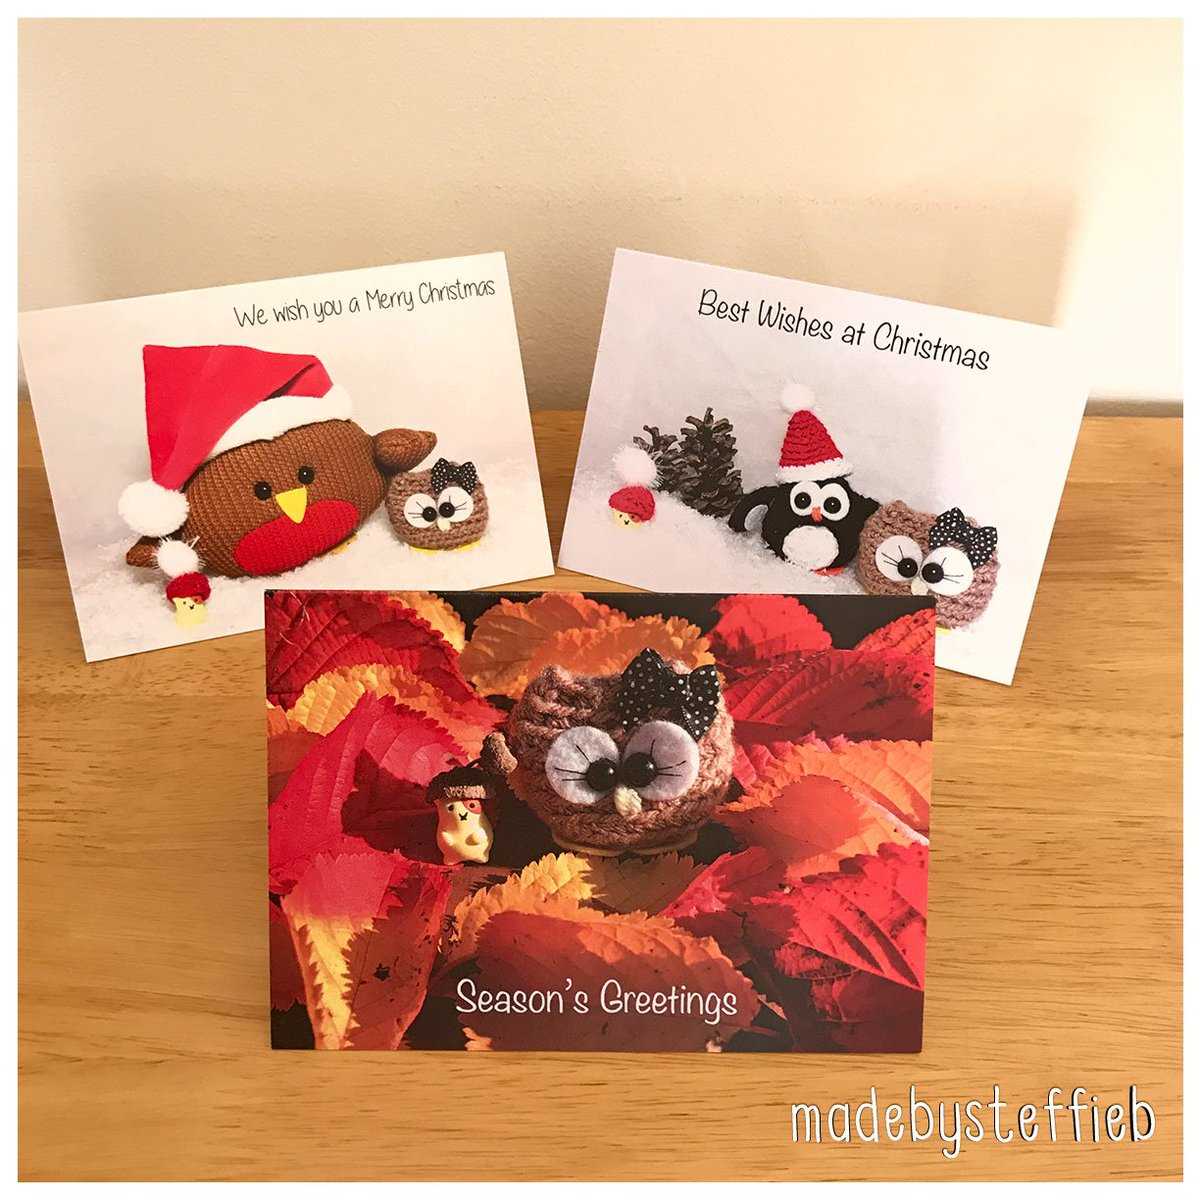 Our pack of 3 #cards are just £5  one of each design per pack!  pop in   http:// tinyurl.com/ybvhry6a  &nbsp;      #thursday #christmascards #handmade #eshopsuk #Promo #offer #ChristmasIsComing #Christmas #shophandmade #ukbiz #greetingcards #owl #penguin #hamster #cuteanimals<br>http://pic.twitter.com/1vN49iBA1k